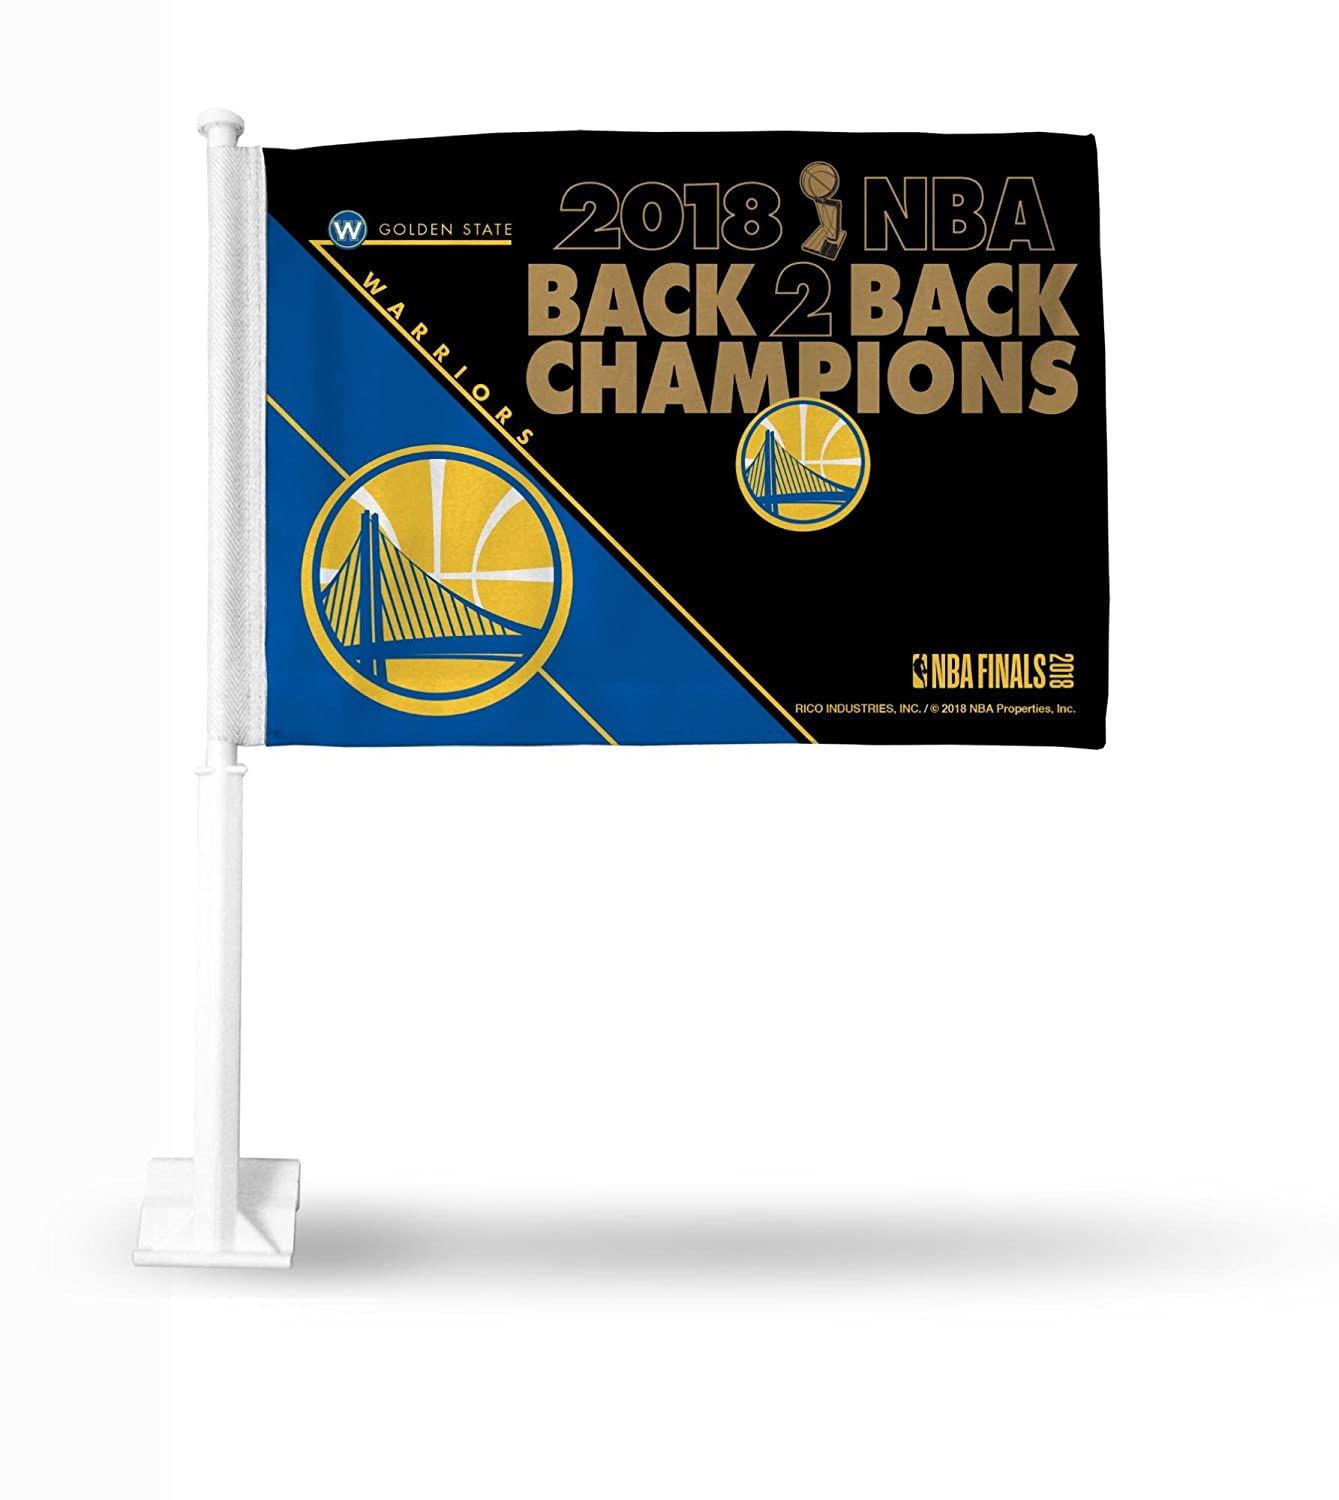 Rico Industries NBA Golden State Warriors 2018 Basketball Champions Car Flag, with White Pole Rico Industries - DROPSHIP FG960WC18